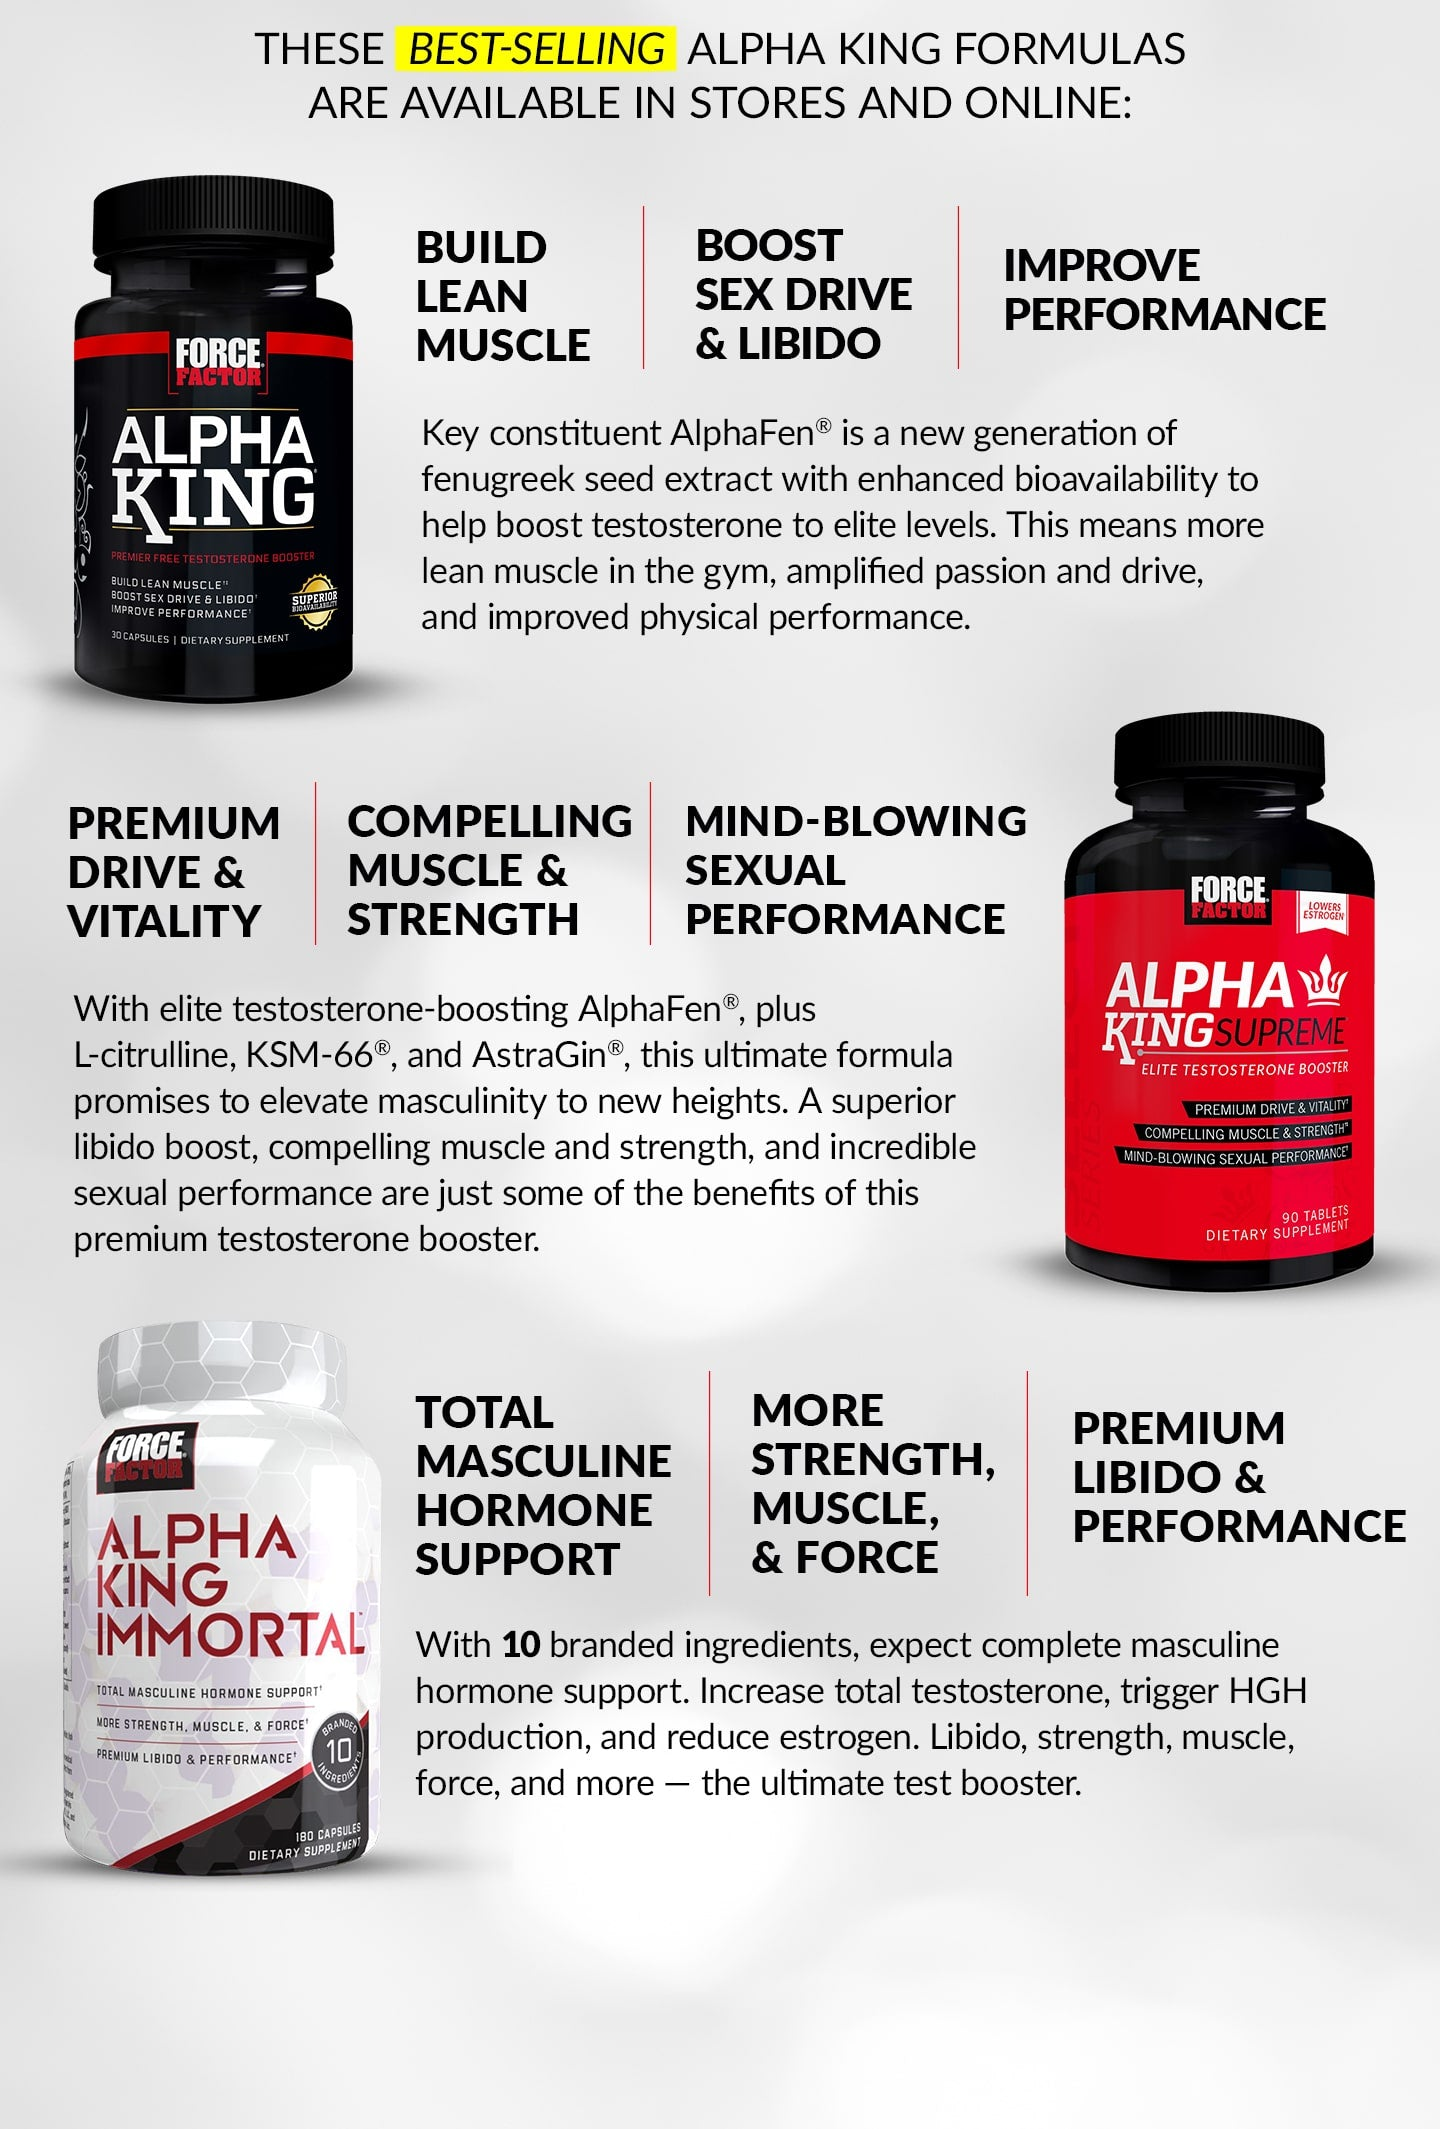 THESE BEST-SELLING ALPHA KING FORMULAS ARE AVAILABLE IN STORES AND ONLINE: Alpha King® - BUILD LEAN MUSCLE, BOOST SEX DRIVE & LIBIDO, IMPROVE PERFORMANCE. Key constituent AlphaFen® is a new generation of fenugreek seed extract with enhanced bioavailability to help boost testosterone to elite levels. This means more lean muscle in the gym, amplified passion and drive, and improved physical performance. Alpha King Supreme® - PREMIUM DRIVE & VITALITY, COMPELLING MUSCLE & STRENGTH, MIND-BLOWING SEXUAL PERFORMANCE. With elite testosterone-boosting AlphaFen®, plus L-citrulline, KSM-66®, and AstraGin®, this ultimate formula promises to elevate masculinity to new heights. A superior libido boost, compelling muscle and strength, and incredible sexual performance are just some of the benefits of this premium testosterone booster. Alpha King Immortal® - TOTAL MASCULINE HORMONE SUPPORT, MORE STRENGTH, MUSCLE, & FORCE, PREMIUM LIBIDO & PERFORMANCE. With 10 branded ingredients, expect complete masculine hormone support. Increase total testosterone, trigger HGH production, and reduce estrogen. Libido, strength, muscle, force, and more – the ultimate test booster.